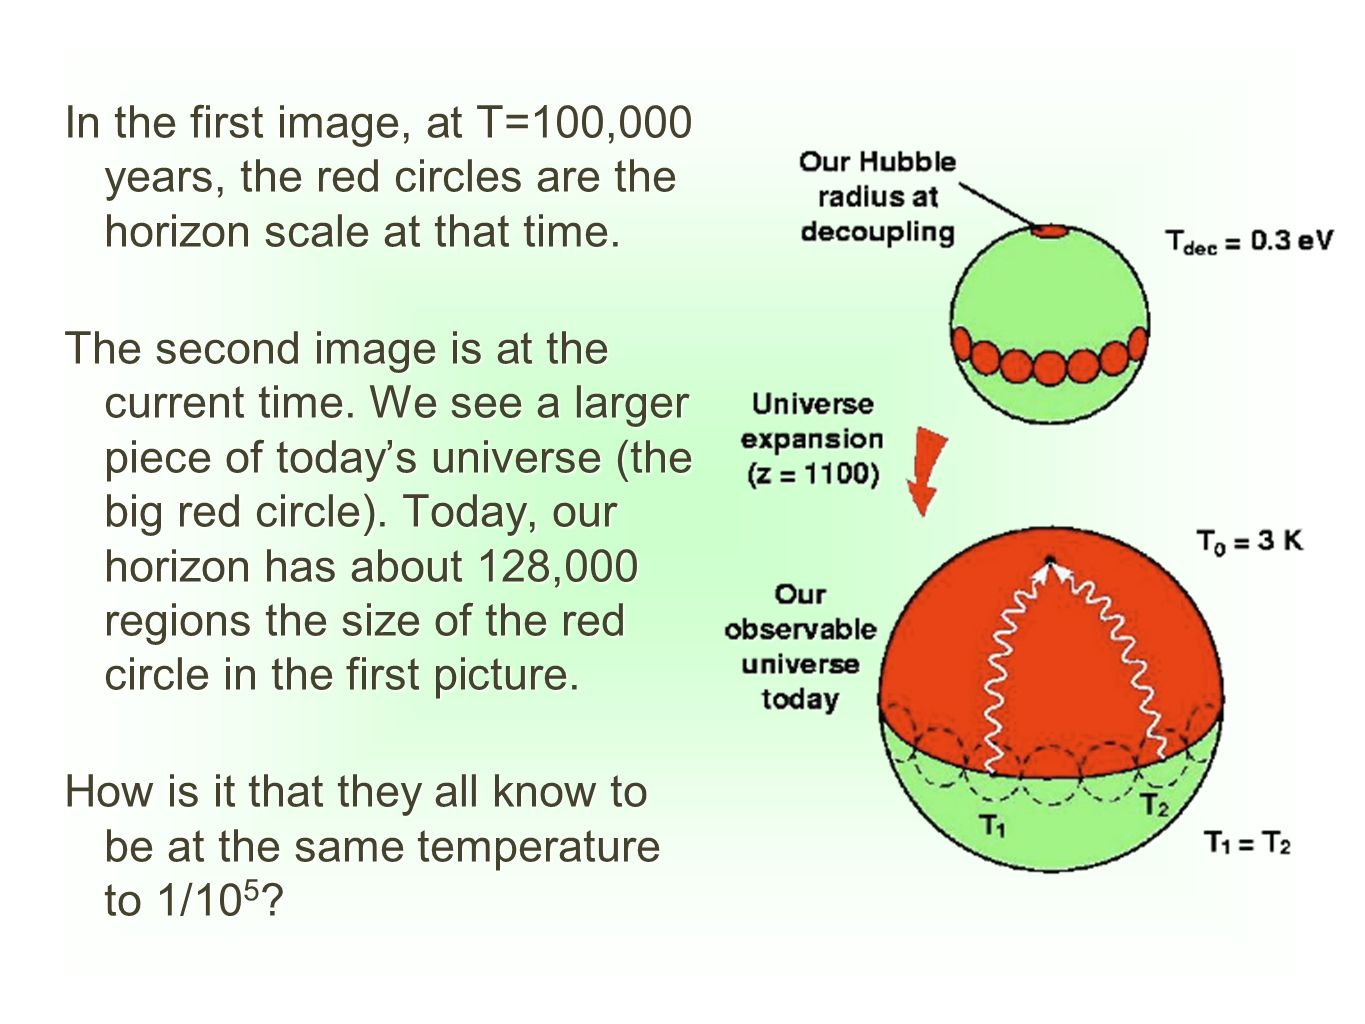 In the first image, at T=100,000 years, the red circles are the horizon scale at that time.